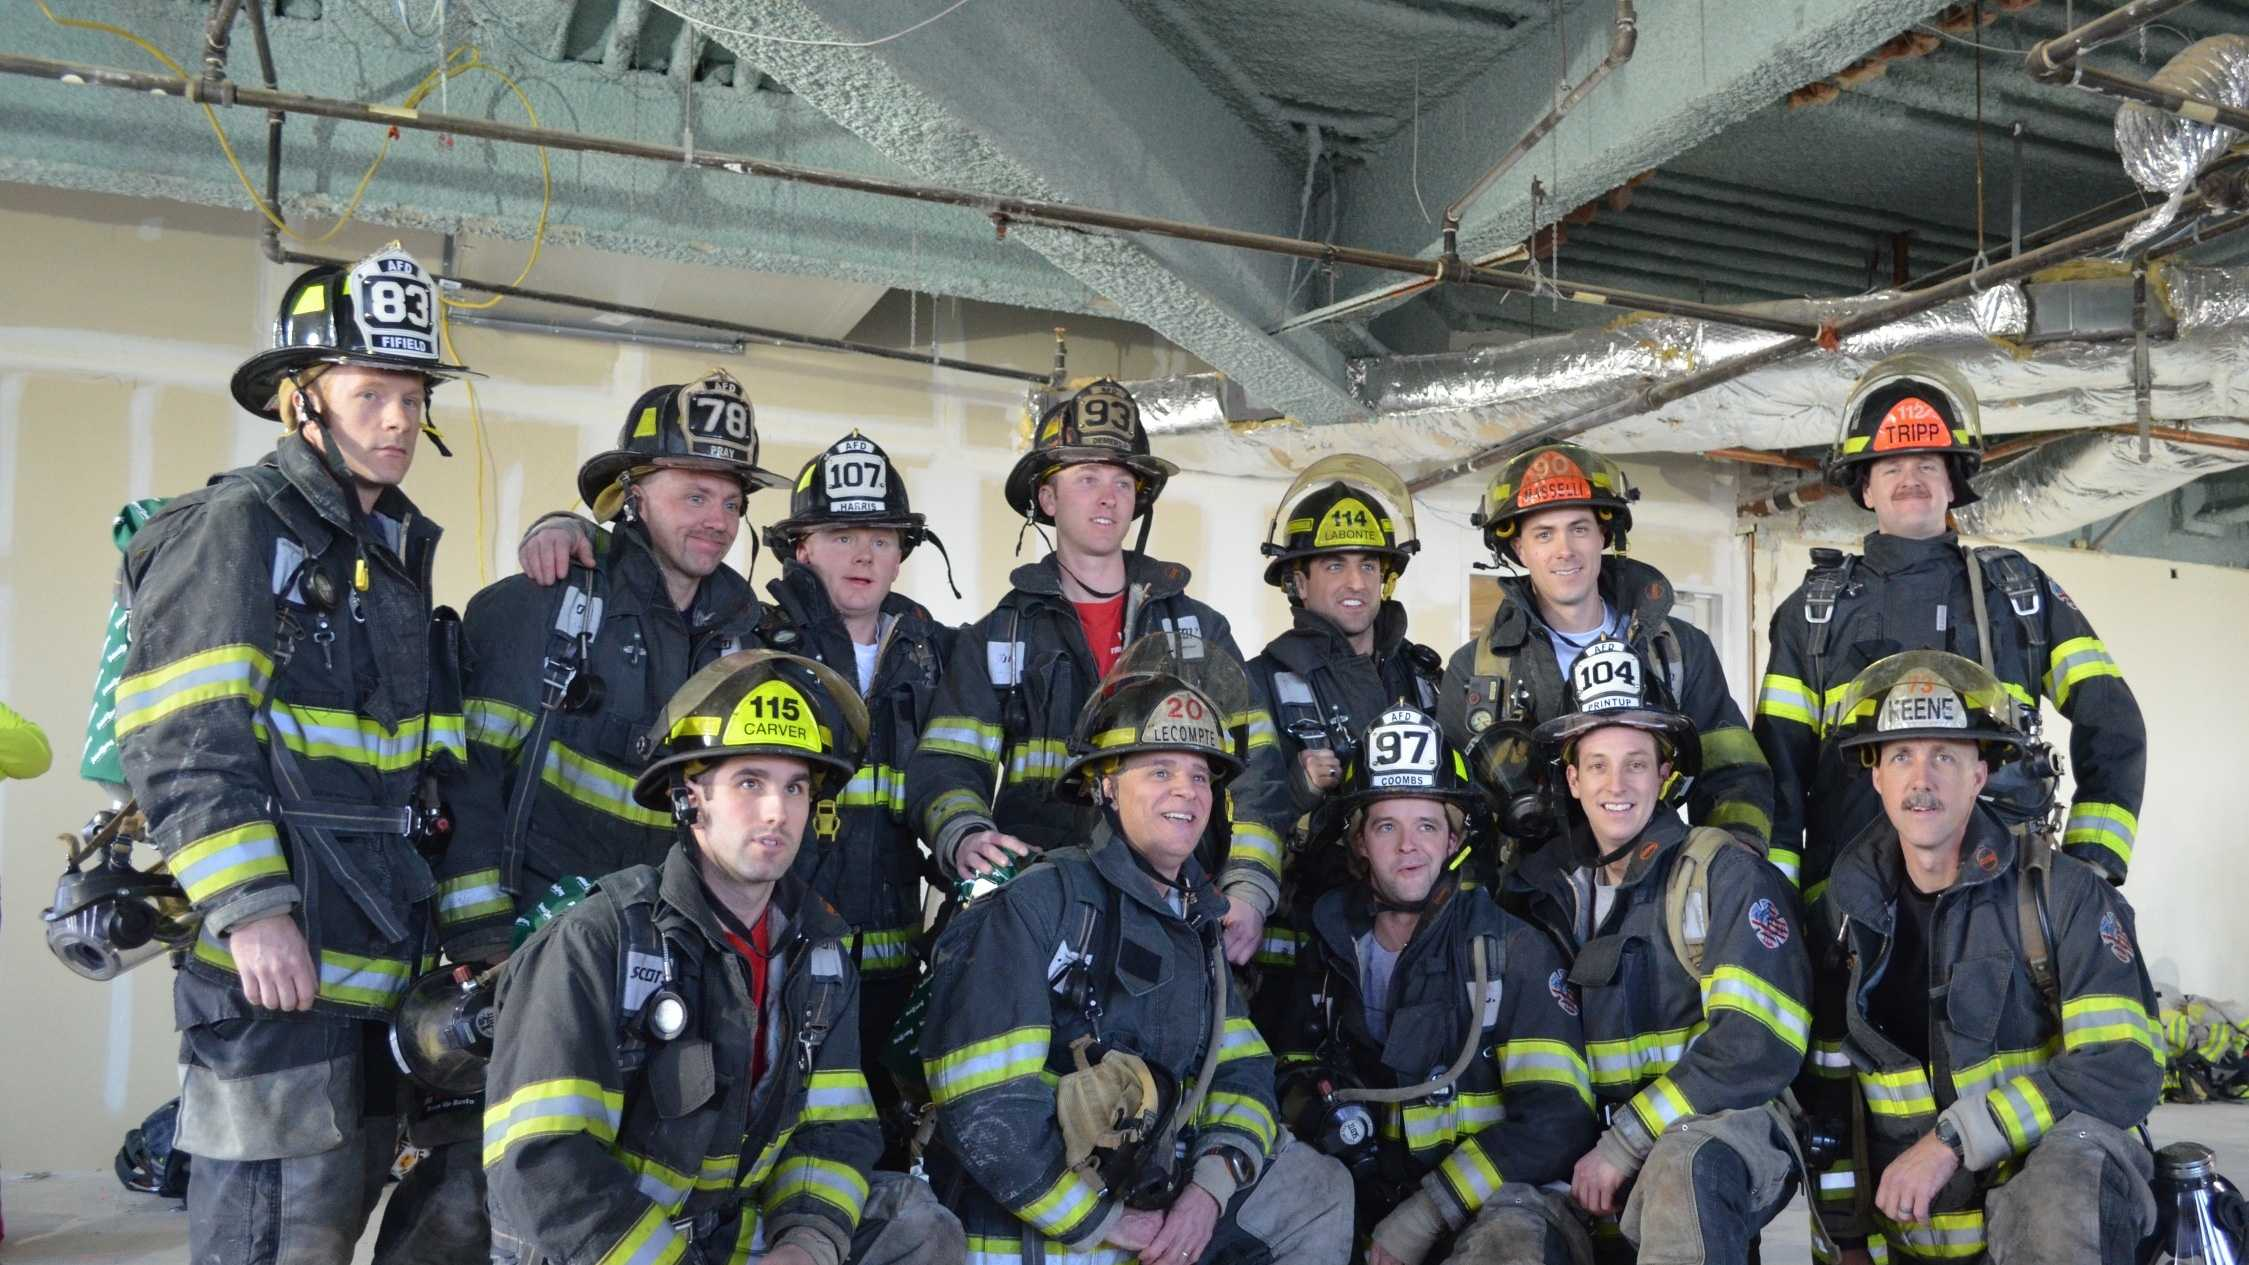 """Firefighters from the Auburn Fire Dept. came in first out of 41 firefighter teams and raised $5,000 at the American Lung Association's Fight for Air Climb held in Boston on Feb. 2. """"Maine's Bravest"""" team members are (front, left to right) Justin Carver, Mike Lecompte, Steve Coombs, Tom Printup and Chip Keene, and (back, left to right) Matt Fifield, Scott Pray, Josh Harris, Ryan Demers, Josh LaBonte, Dan Masselli and Mark Tripp."""